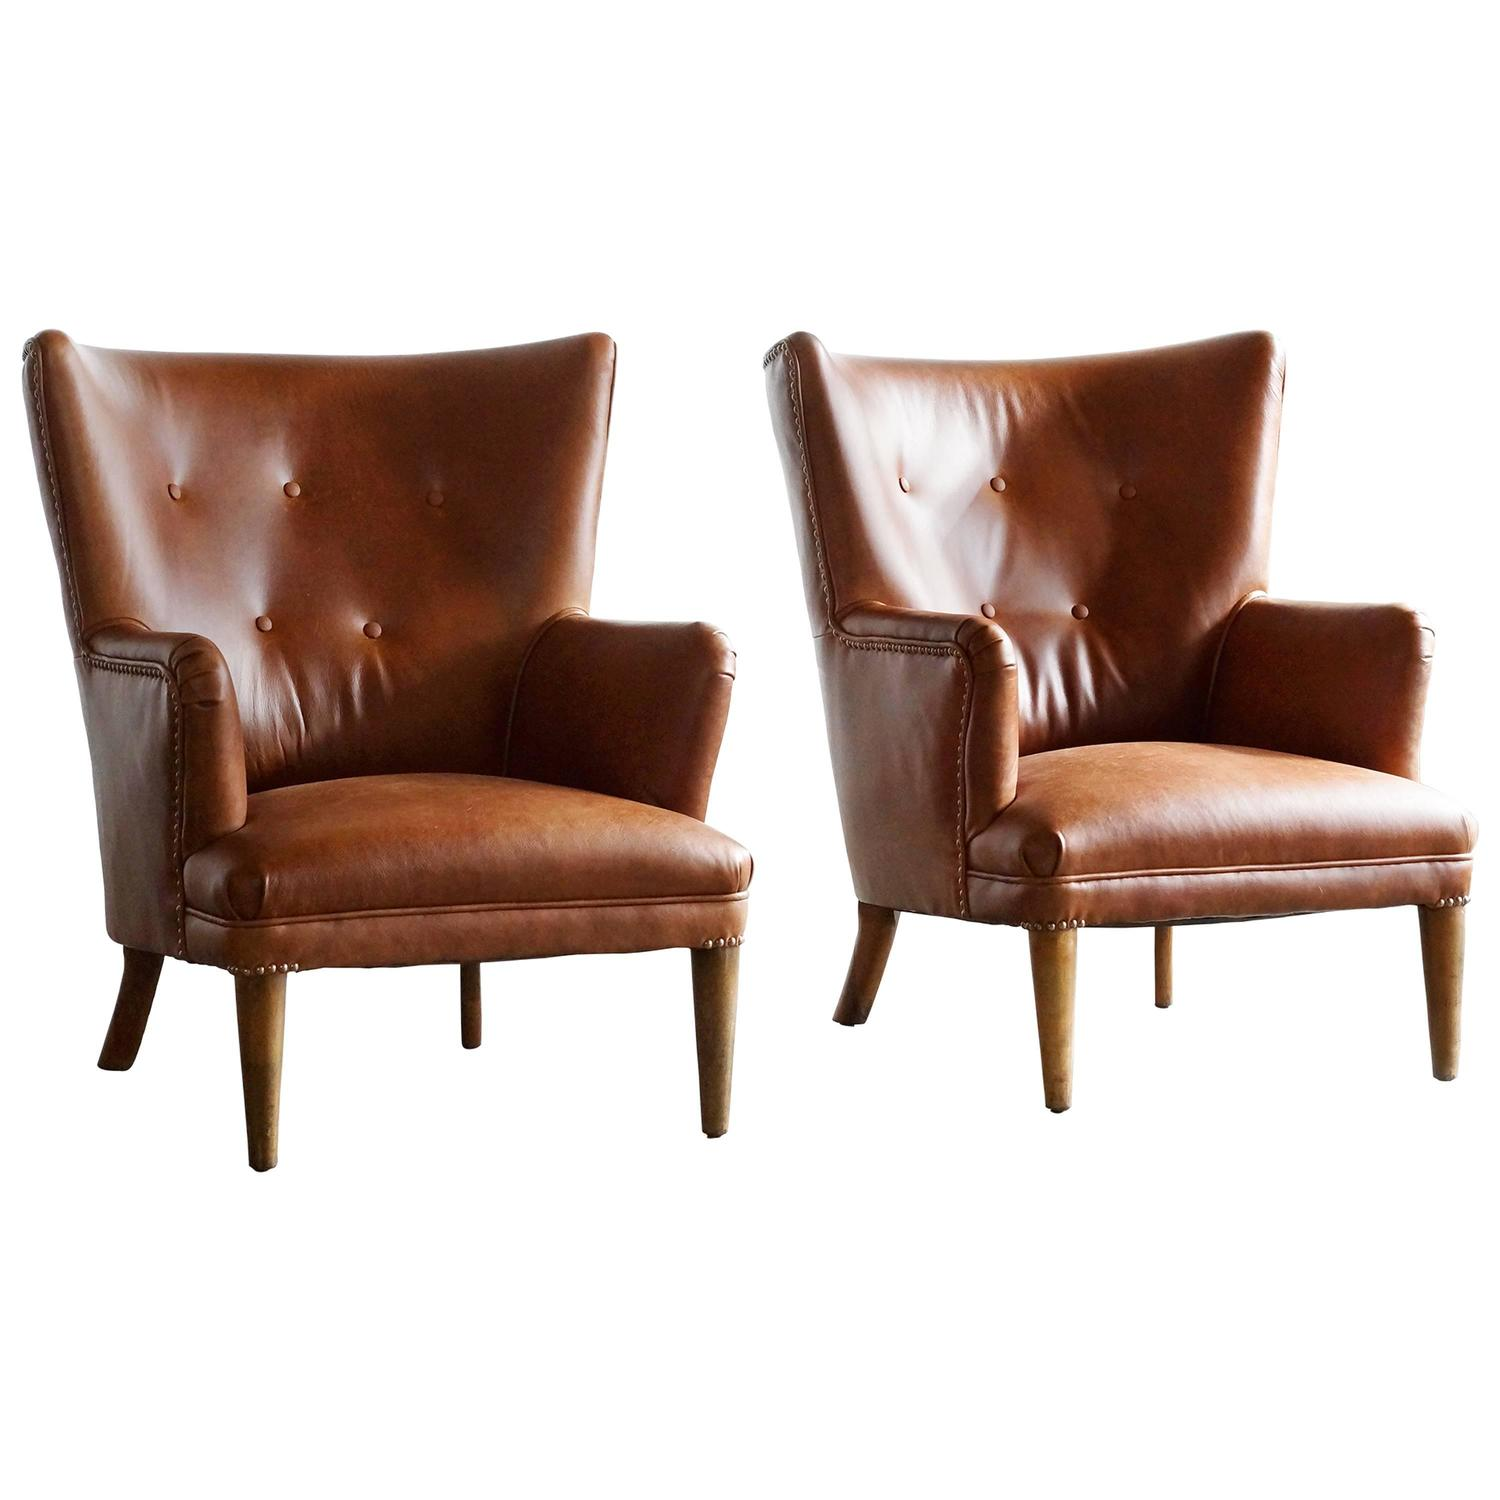 Pair Of 1940s Wingback Chairs At 1stdibs